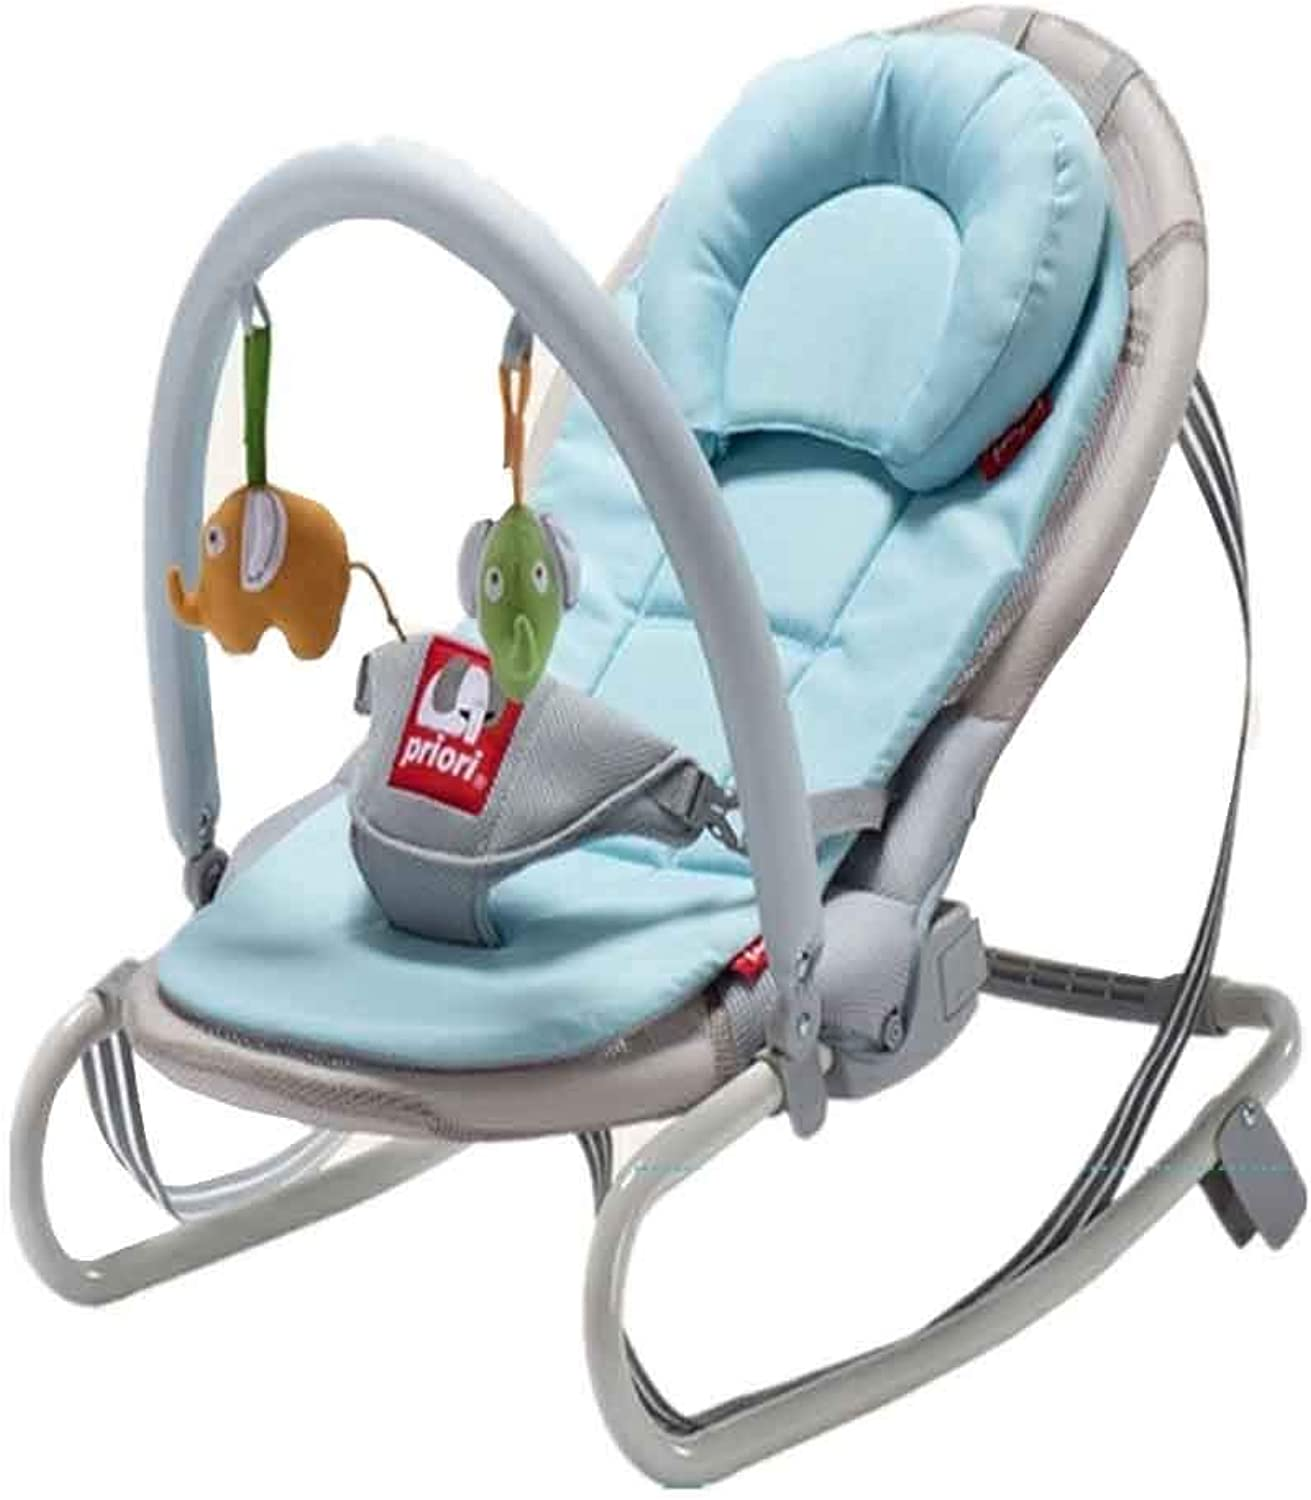 Baby Rocking Chair Cradle Baby Comfort Recliner Rocking Chair Swing